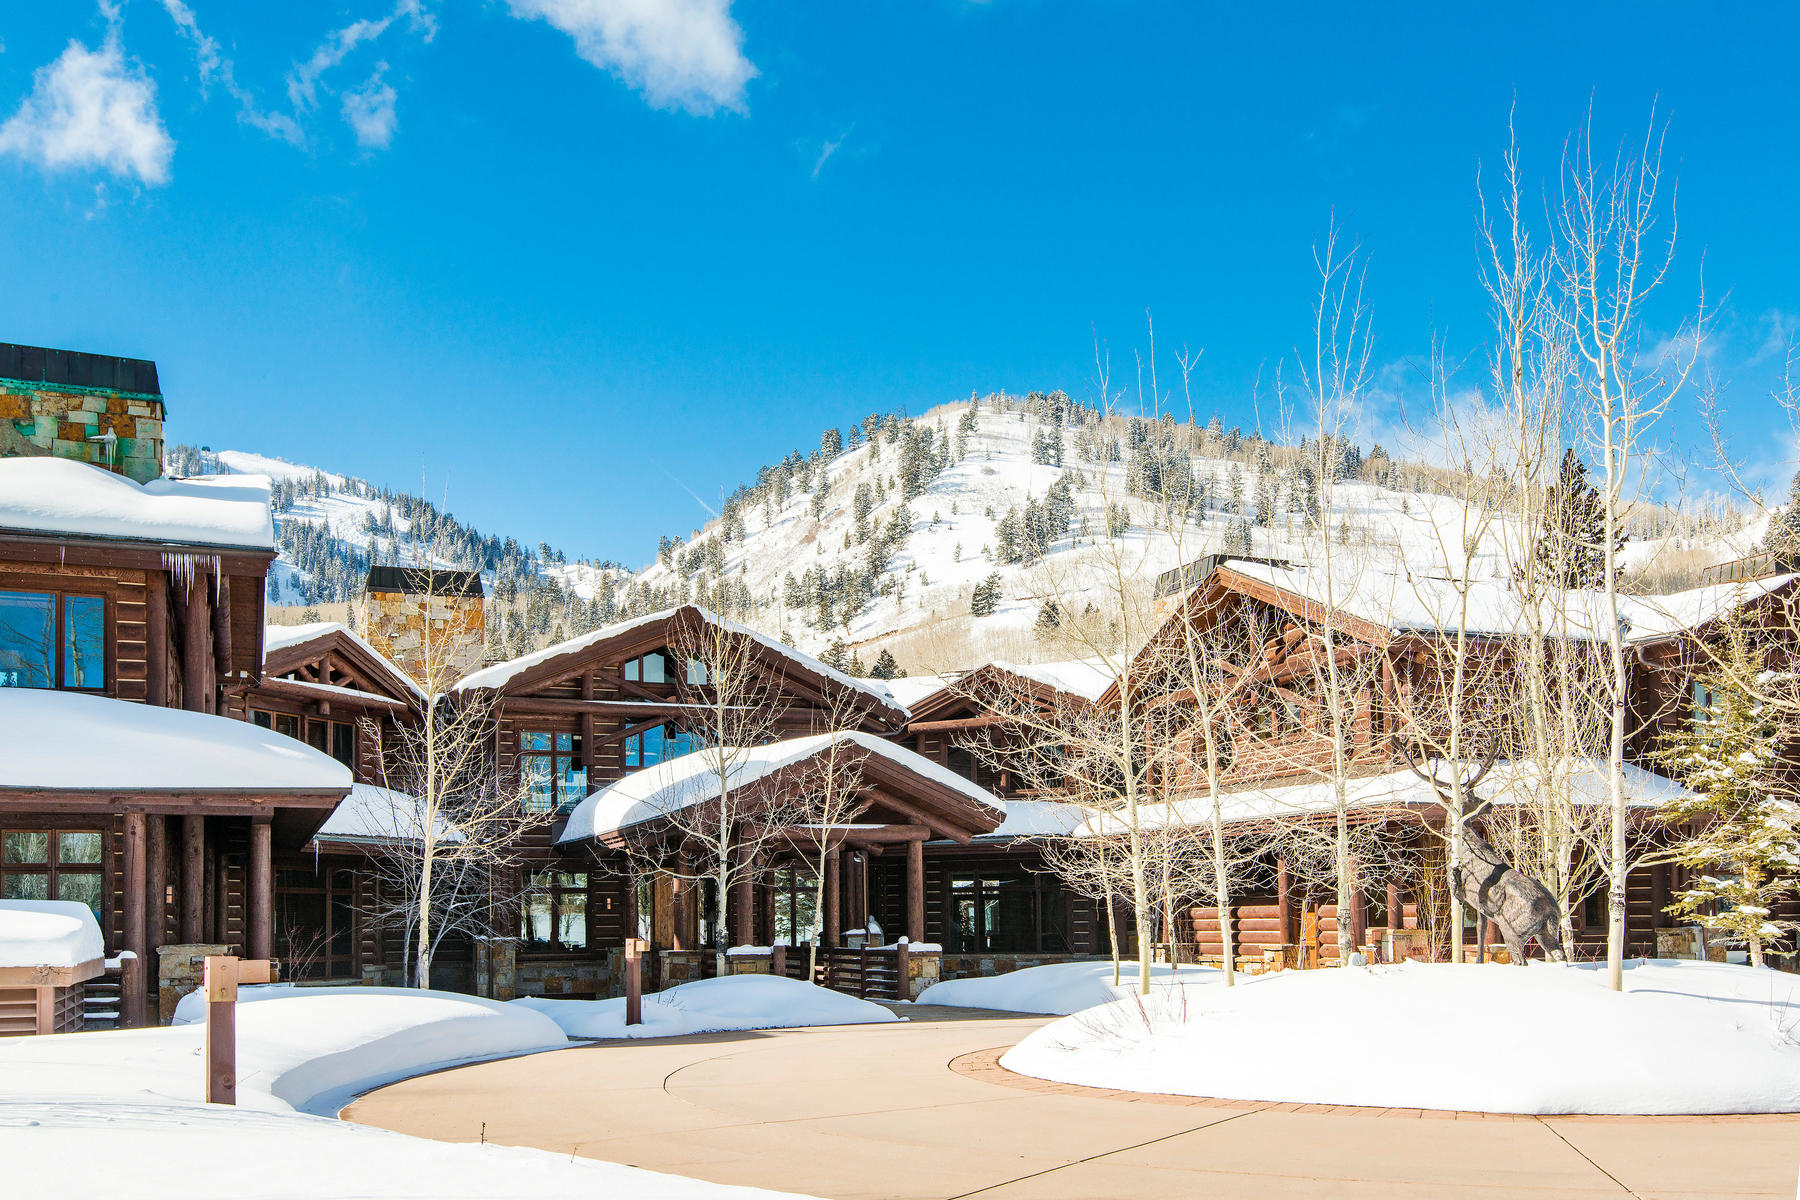 Villa per Vendita alle ore The Ultimate Ski-In / Ski-Out Estate 69 White Pine Canyon St. Lot 75, Park City, Utah, 84060 Stati Uniti